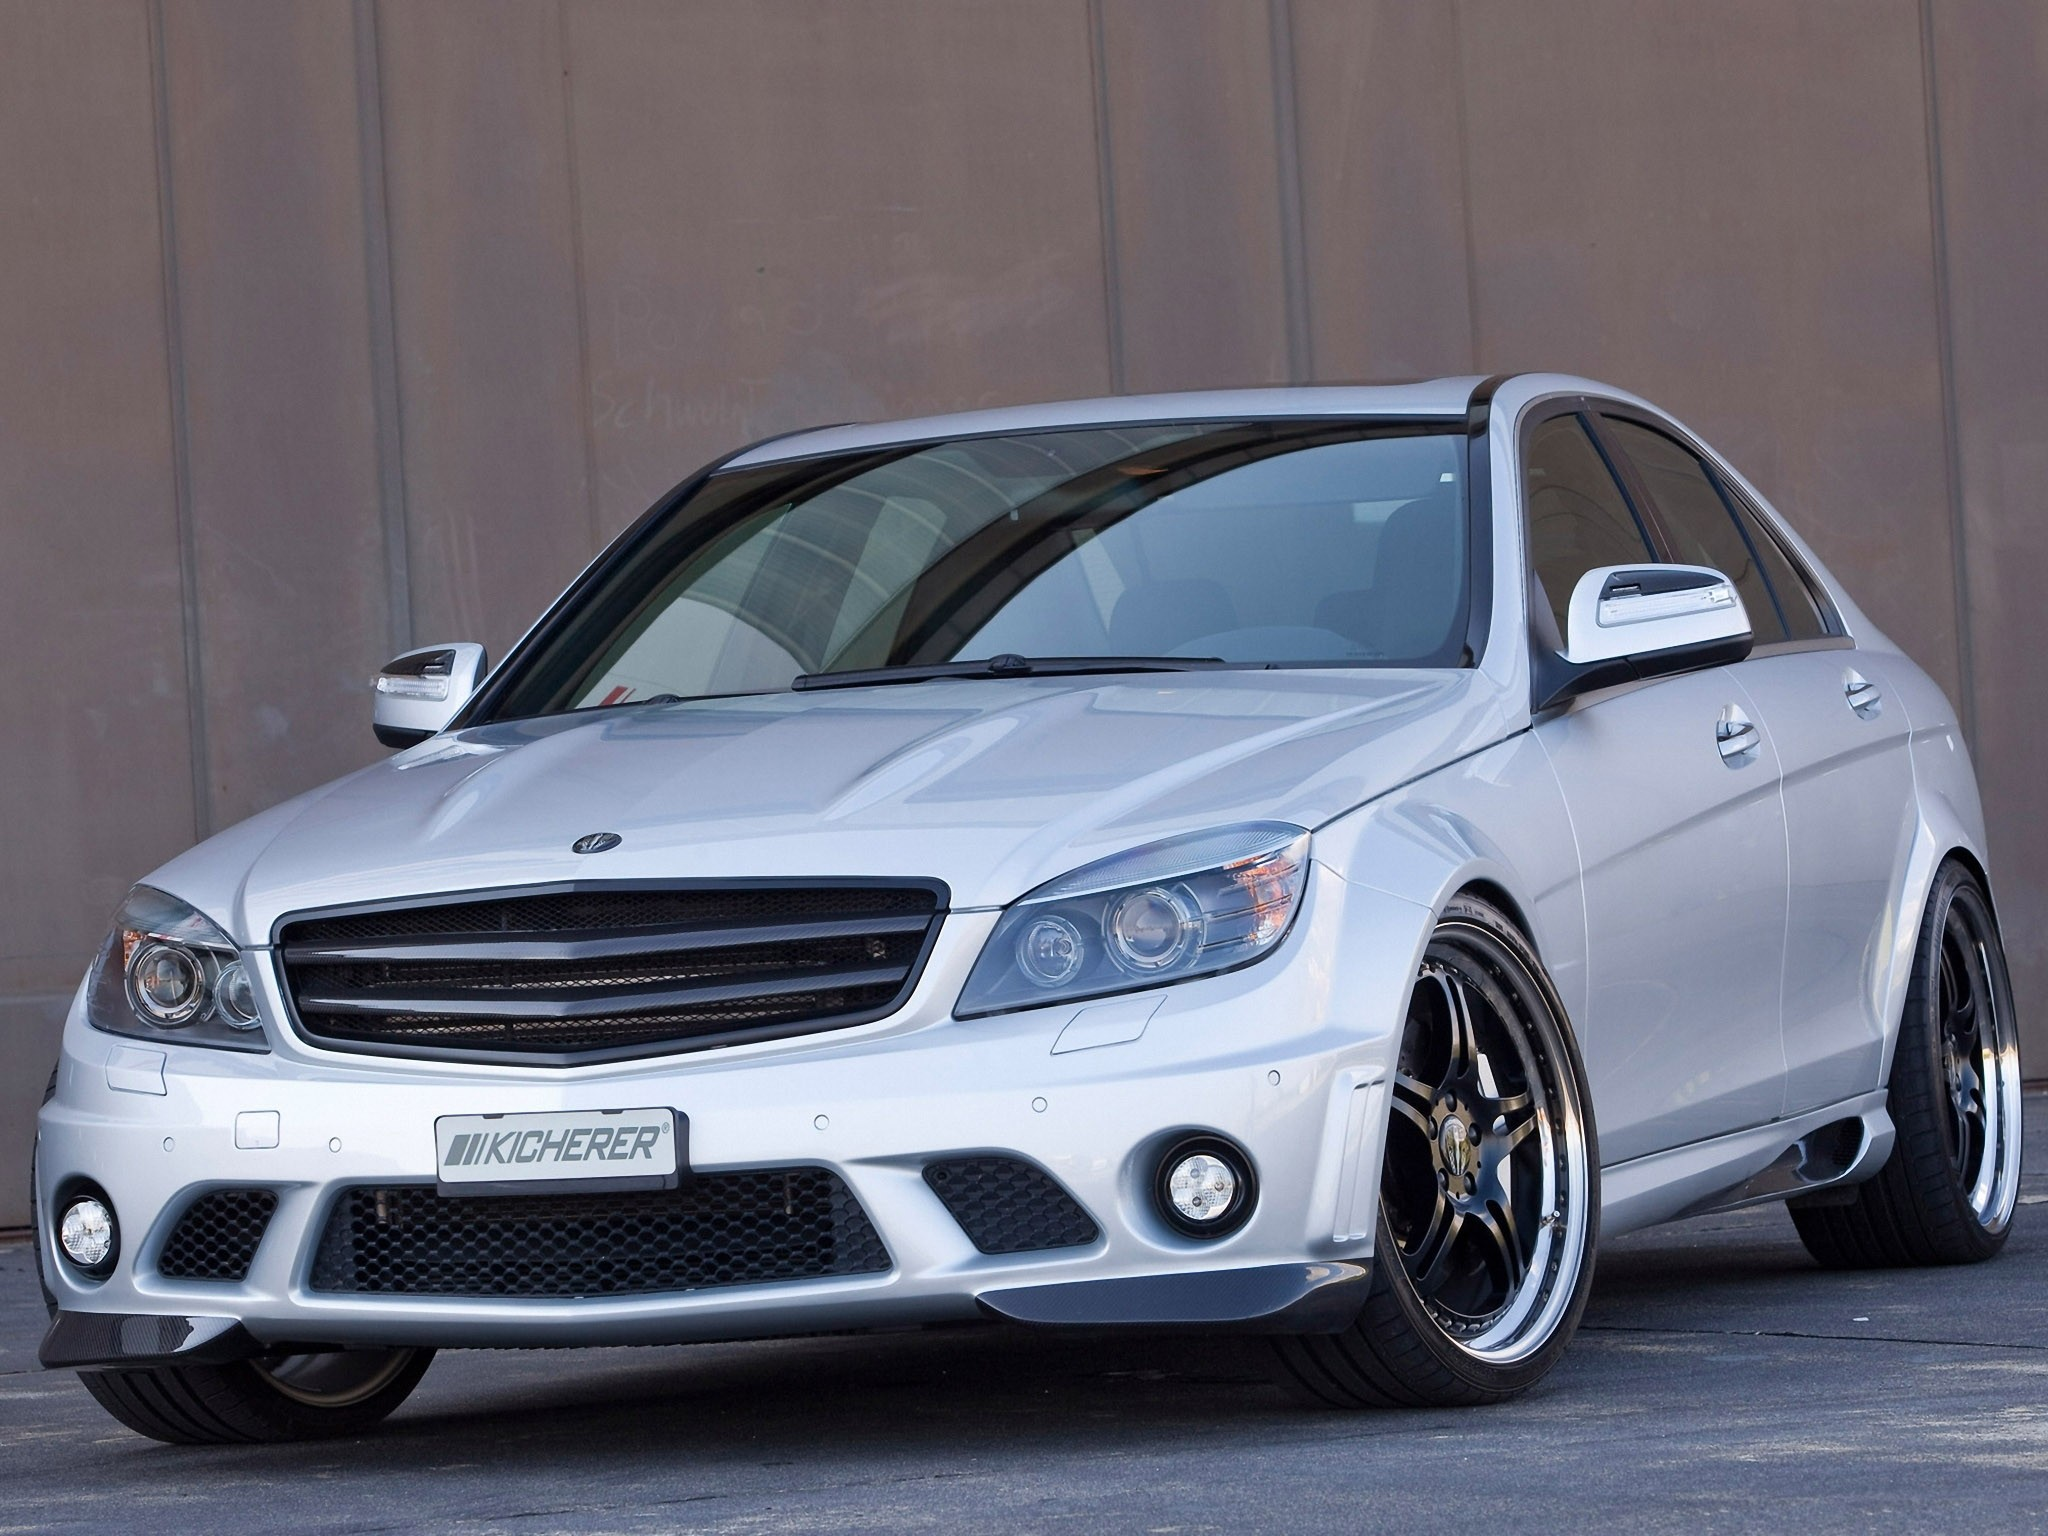 Kicherer_Mercedes C Klasse C63 Supersport W204 2009